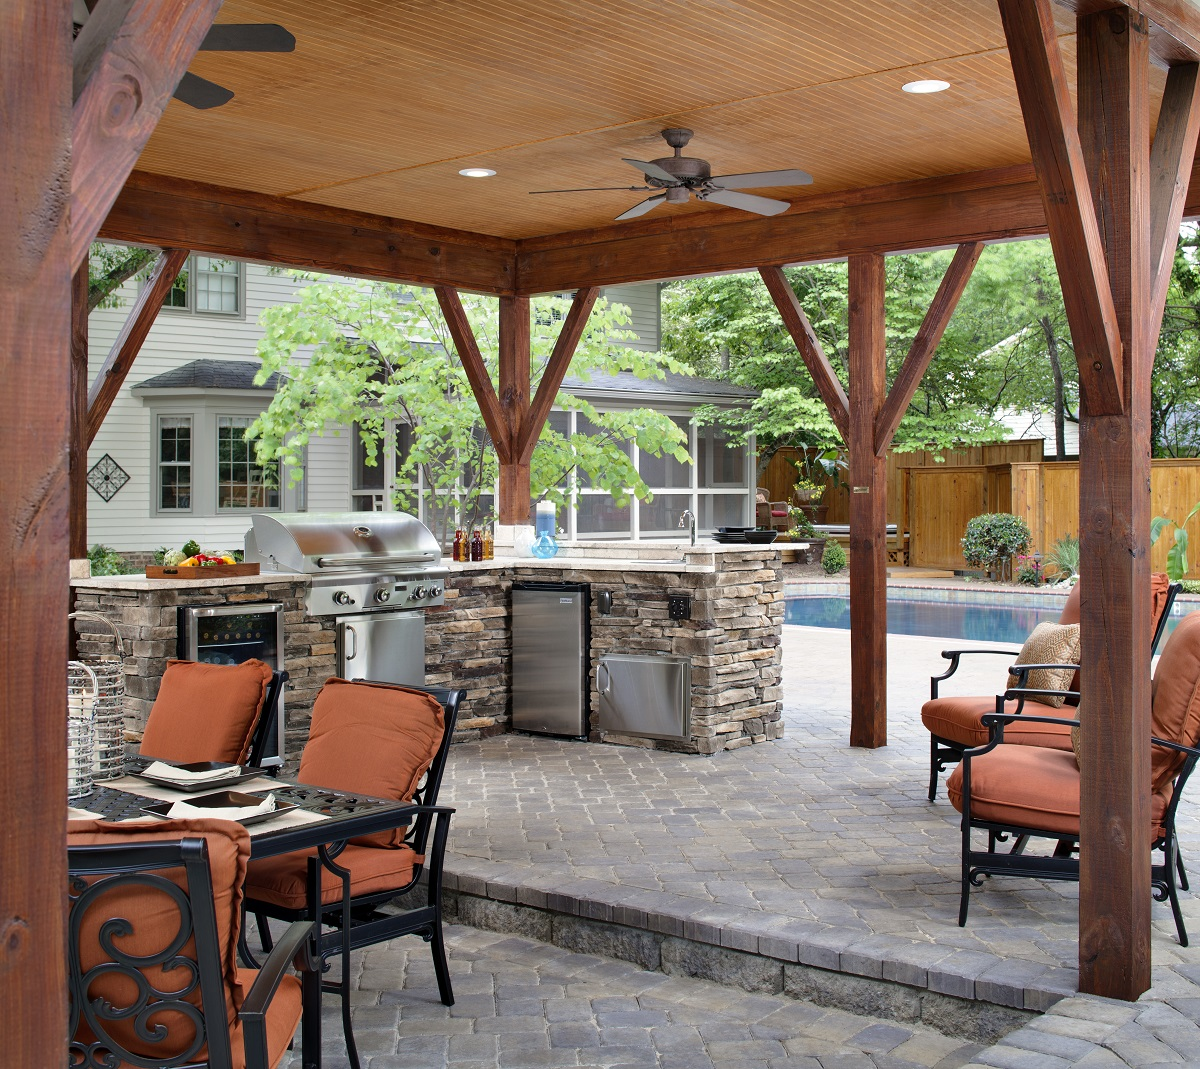 We-can-cook-up-an-amazing-custom-patio-and-outdoor-kitchen-design-just-for-you